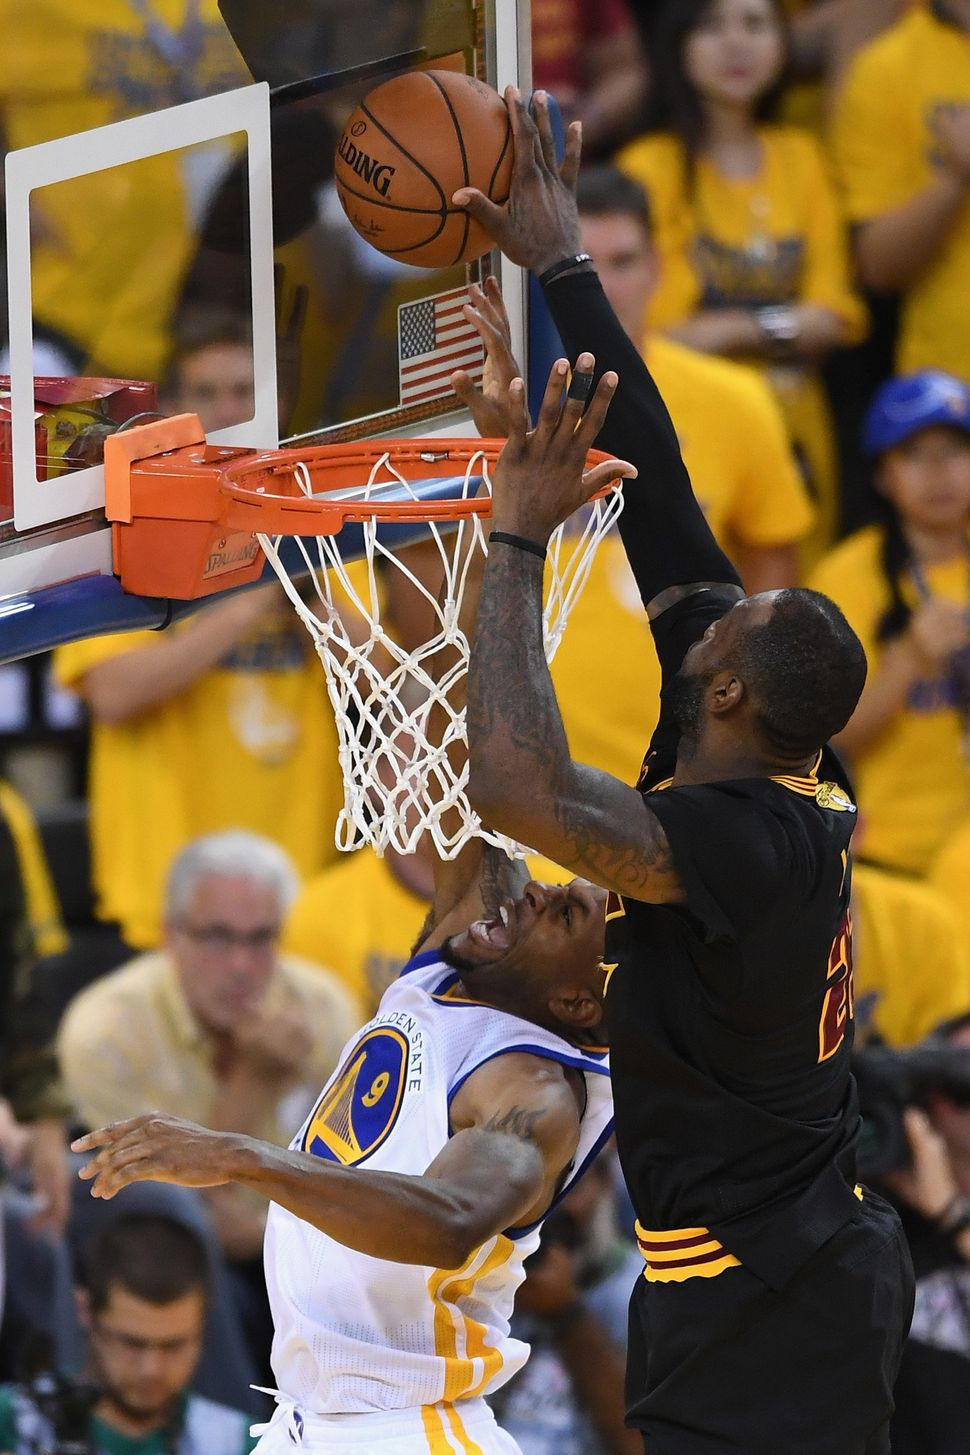 Every Photo We Could Find Of LeBron James Blocking Shots In The 2016 NBA Finals | HuffPost